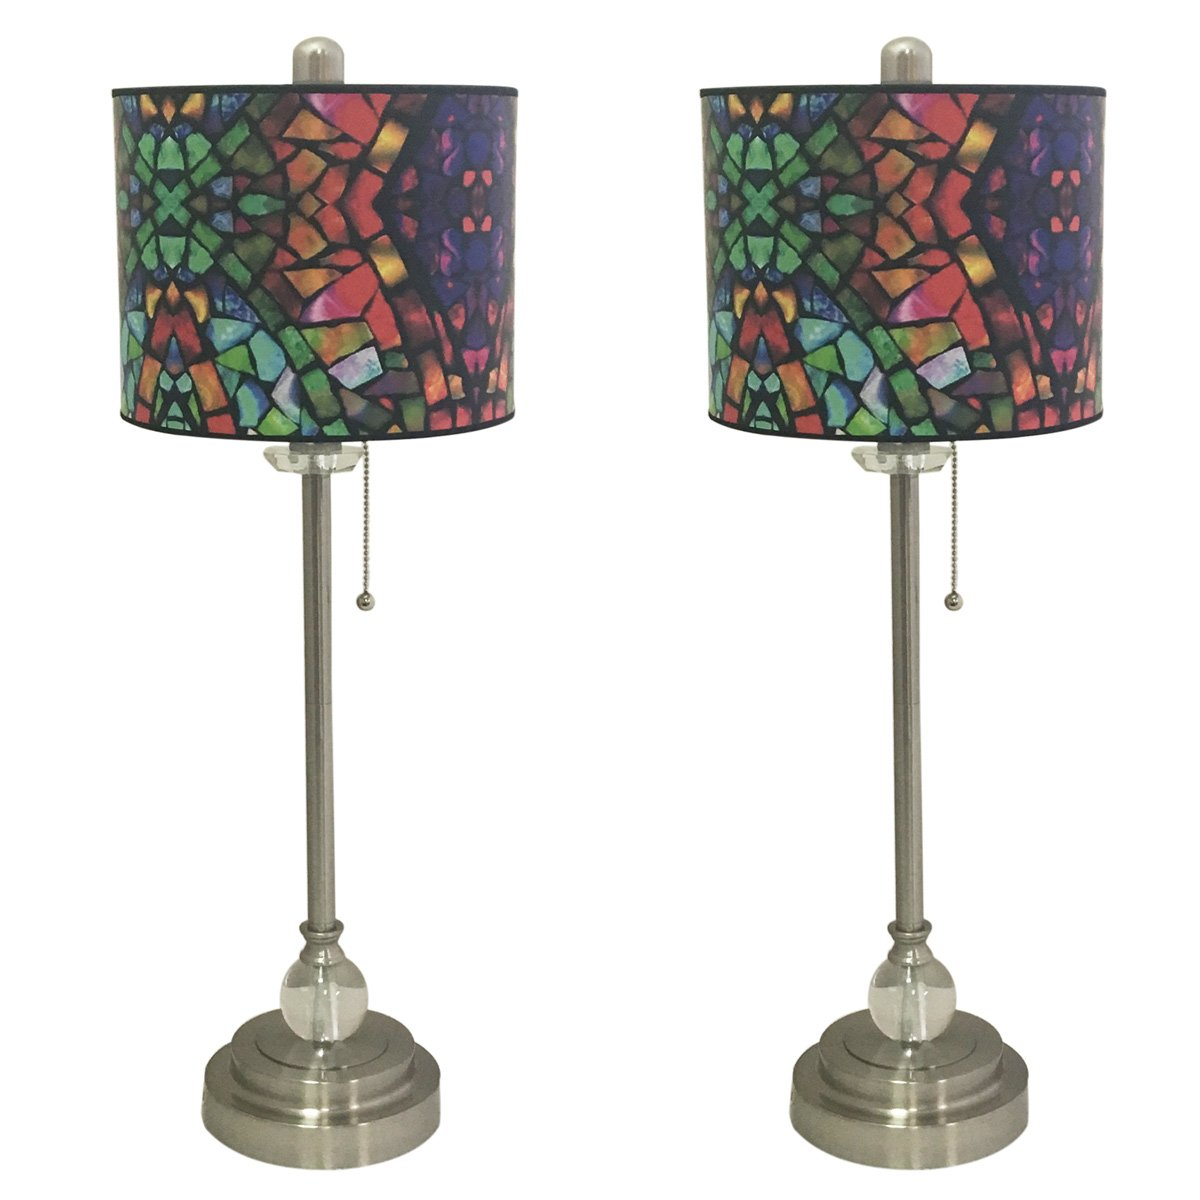 Royal Designs 28'' Crystal and Brushed Nickel Buffet Lamp with Mosaic Stained Glass Design Hardback Lamp Shade, Set of 2 by Royal Designs, Inc